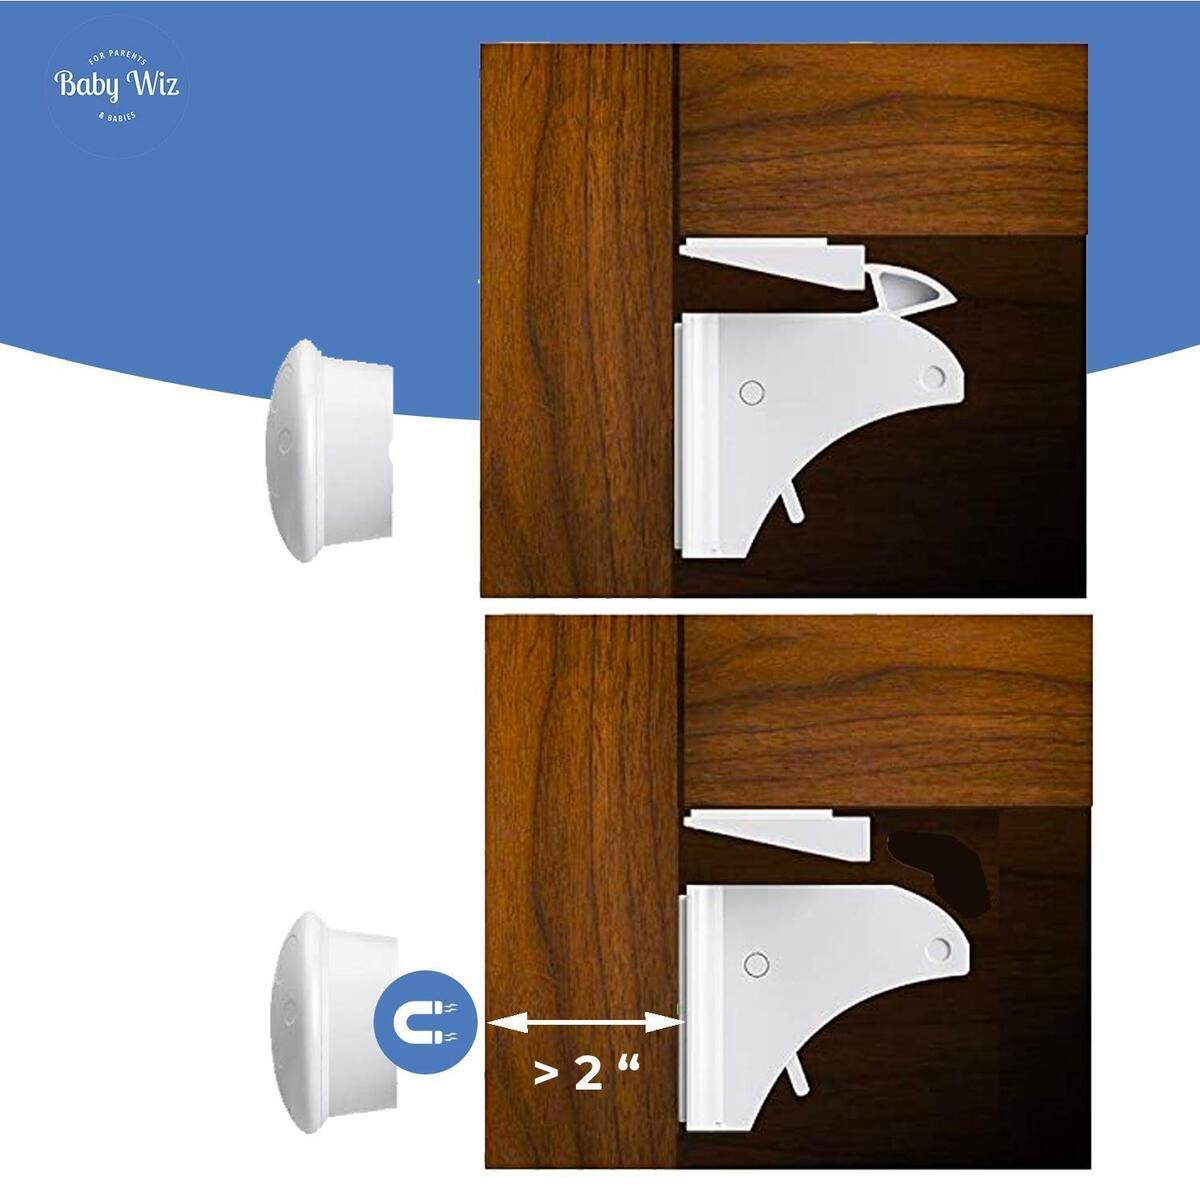 Baby Wiz Adhesive Magnetic Safety Lock for Cabinets and Drawers, 12 Locks & 2 Keys